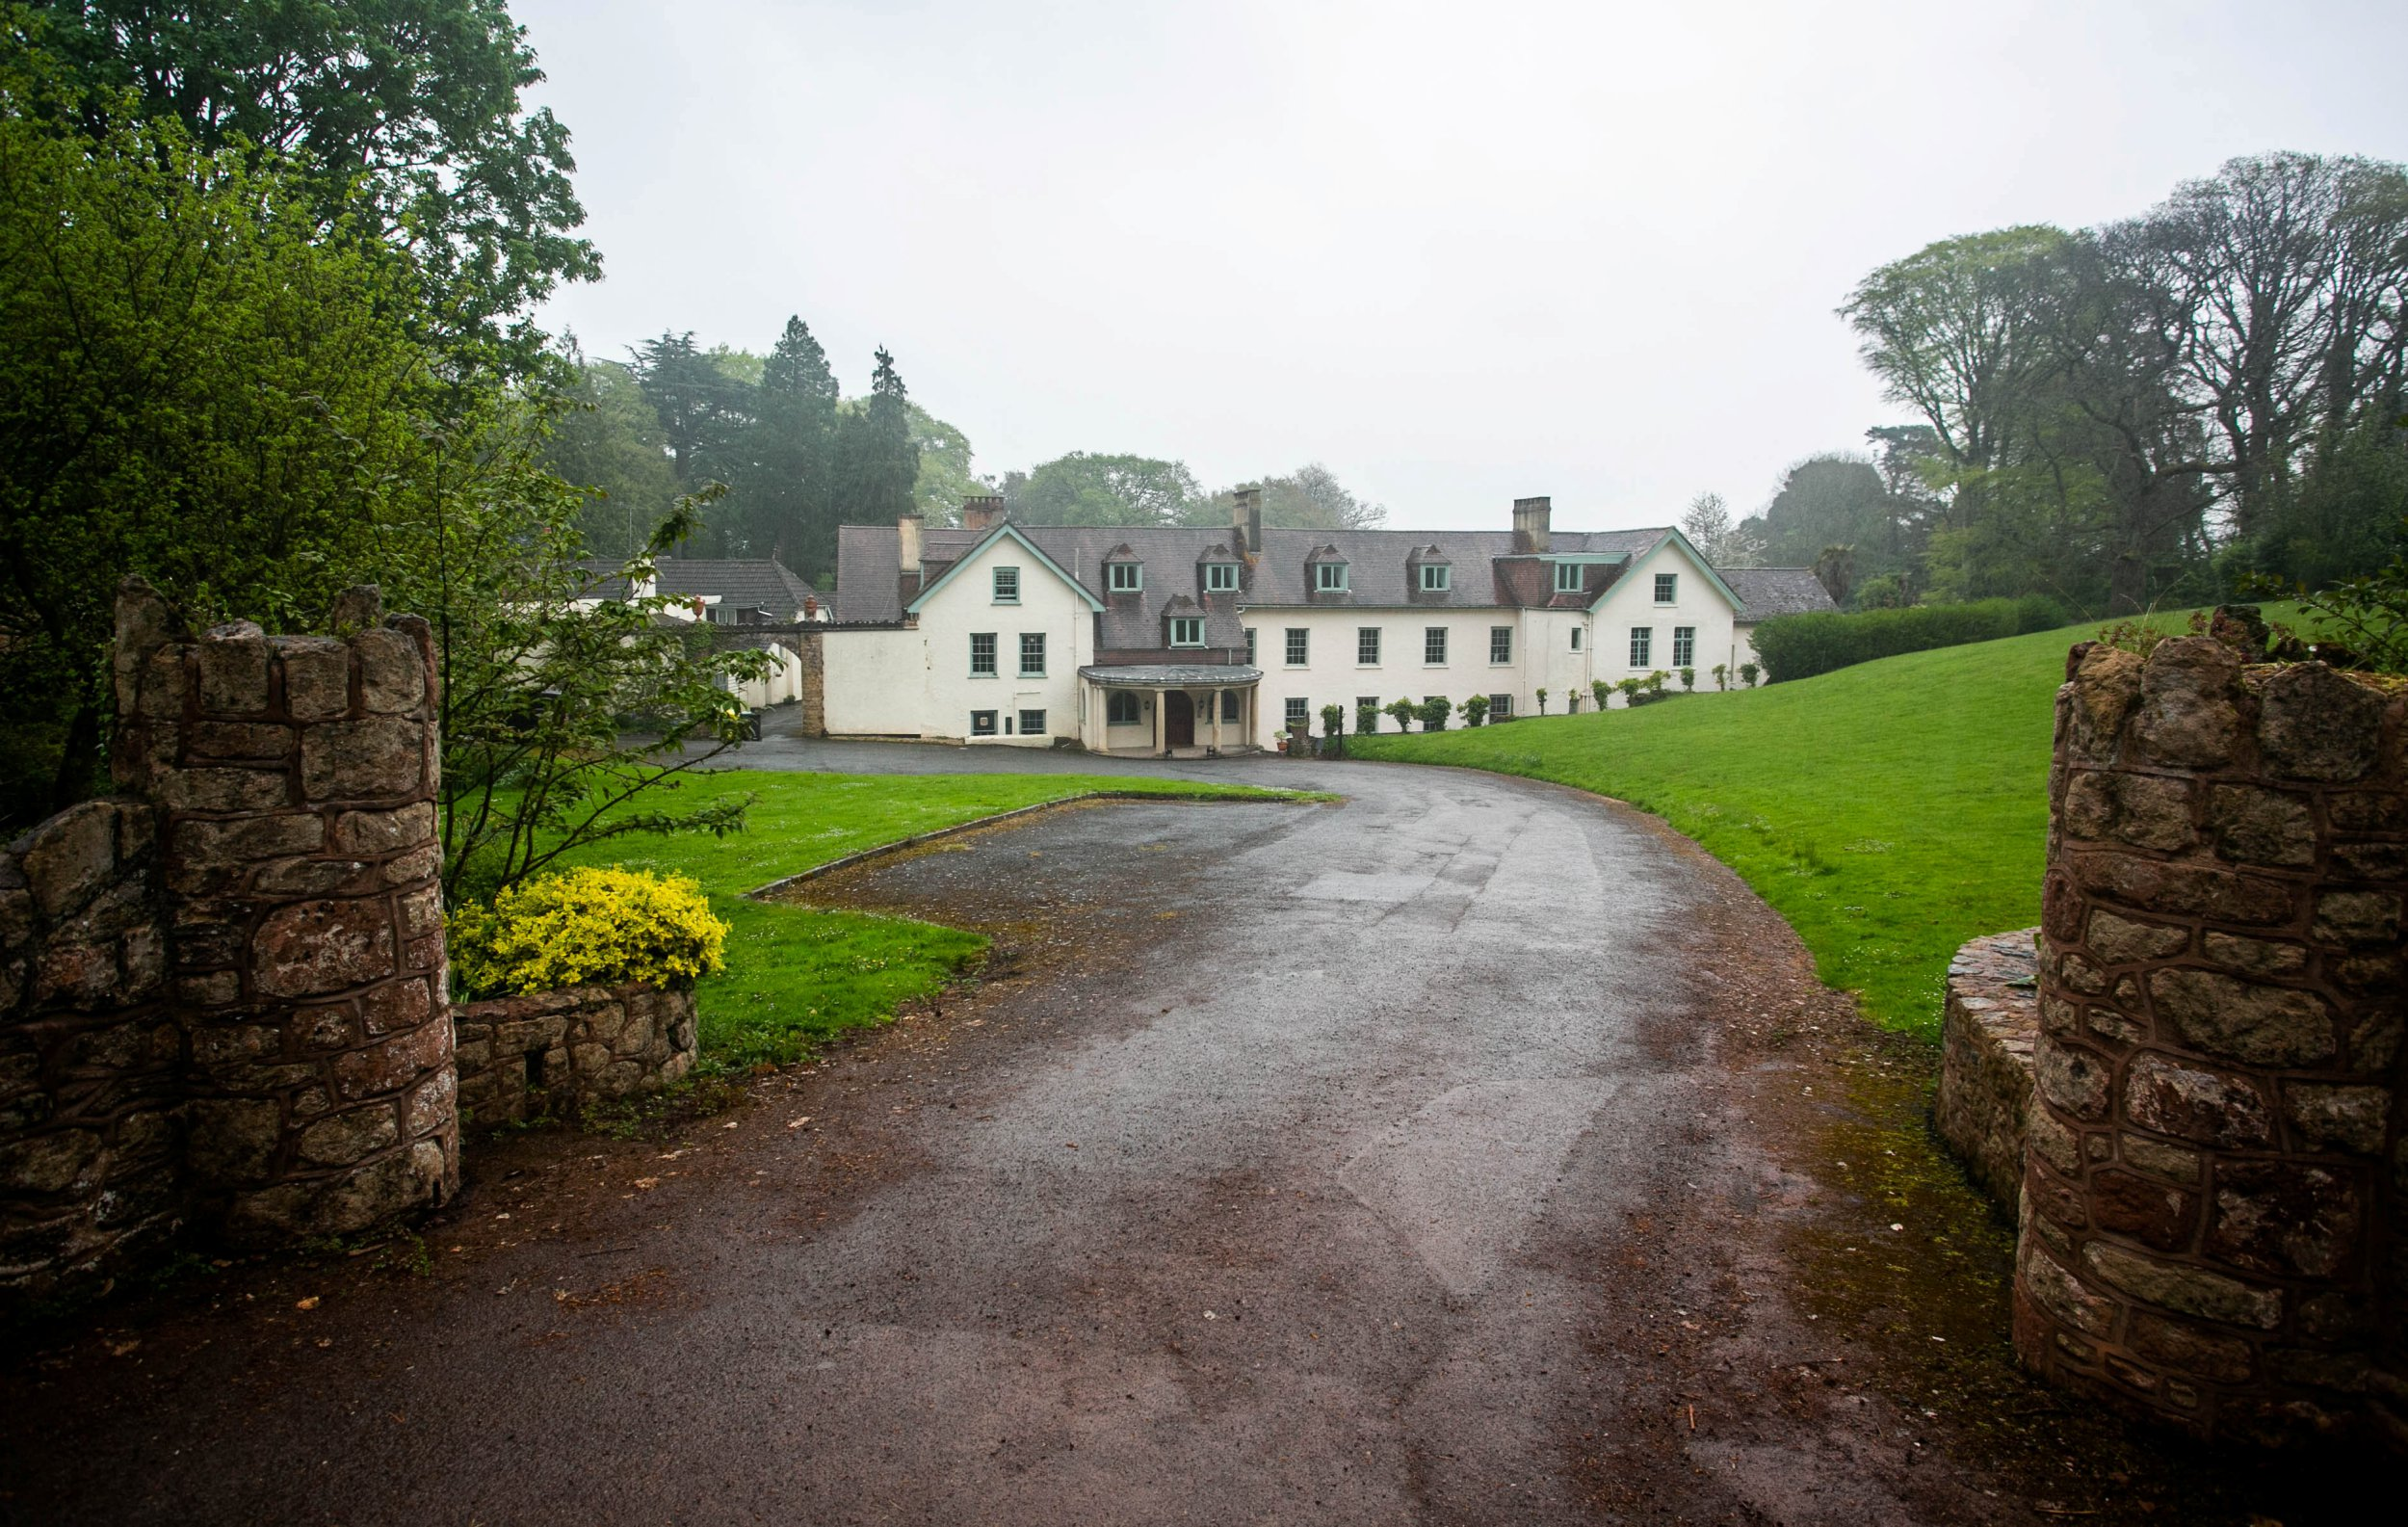 """Croydon Hall at the Exmoor National Park village of Rodhuish, Somerset, which is the venue for members only 'Exclusively Silks' parties. 24/04/2019 See SWNS story SWBRswinging. National Park officials are investigating claims a hotel in a tiny village is breaking planning laws - by offering group sex and SWINGER parties. Croydon Hall is located in the tiny Devon village of Rodhuish - which has a population of just 293 people. But neighbours have complained of people """"spilling out into the gardens and pool'' at night and say the noise is ruining the quality of life. The row came to light after a private club based there applied to extend the alcohol licence until 4am which has further infuriated locals and more than a dozen objected."""